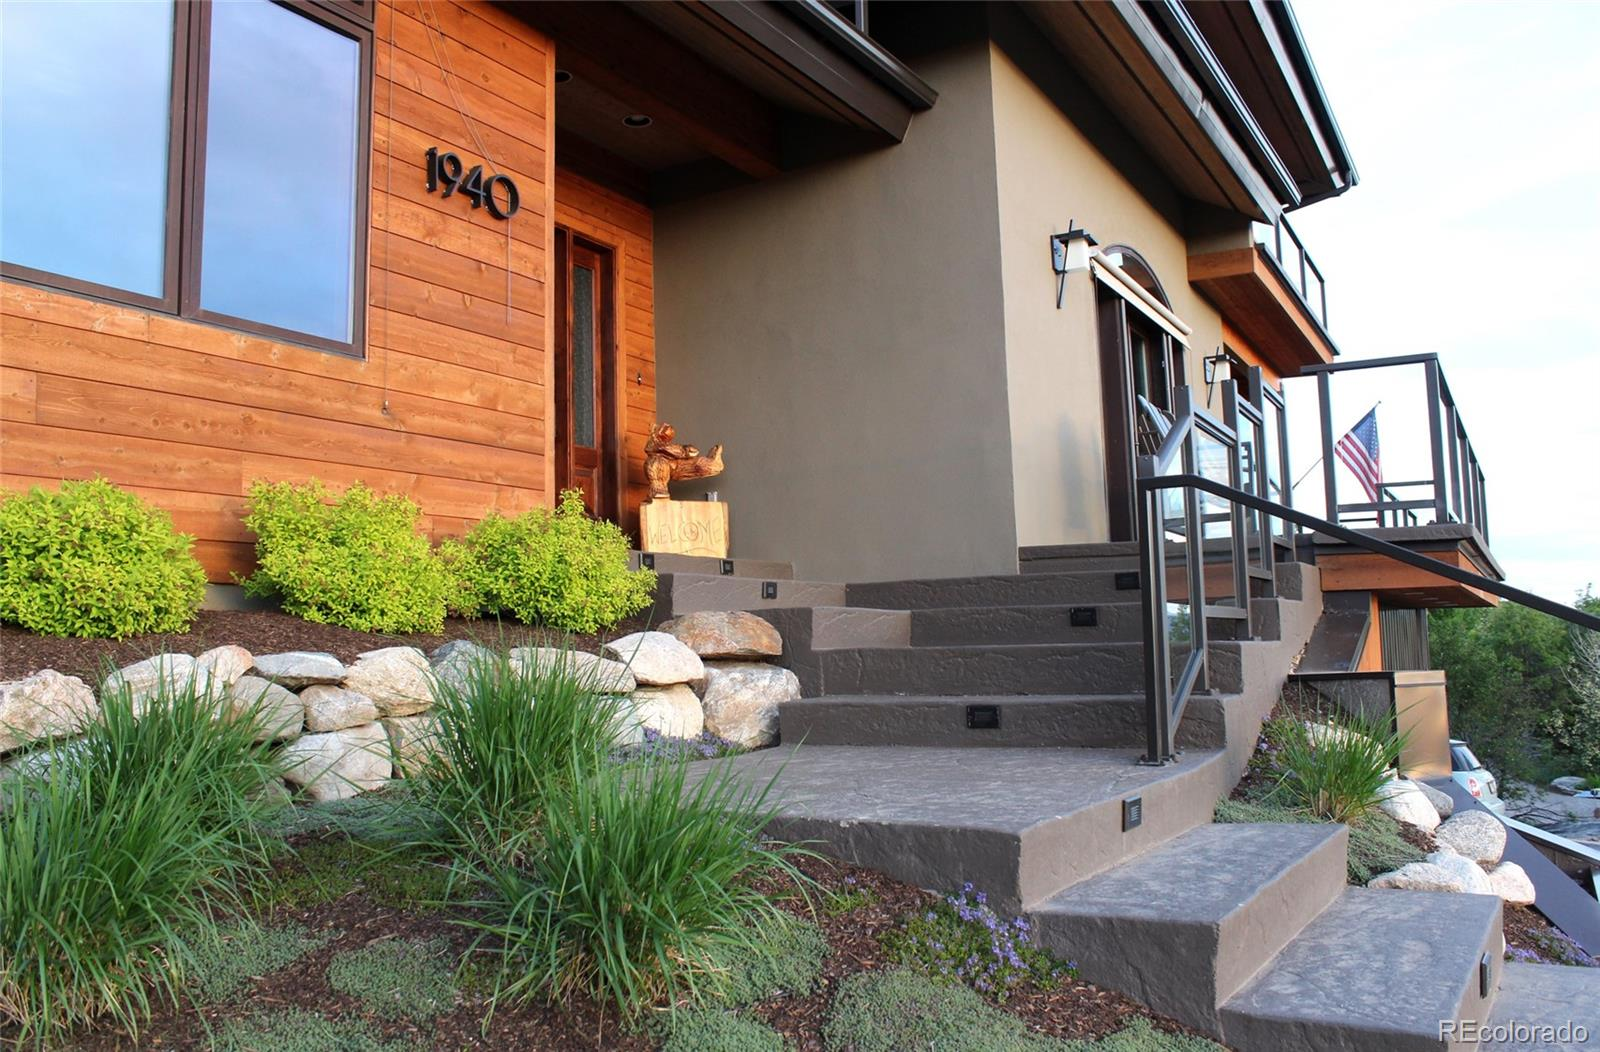 MLS# 4540014 - 2 - 1940 Clubhouse Drive, Steamboat Springs, CO 80487